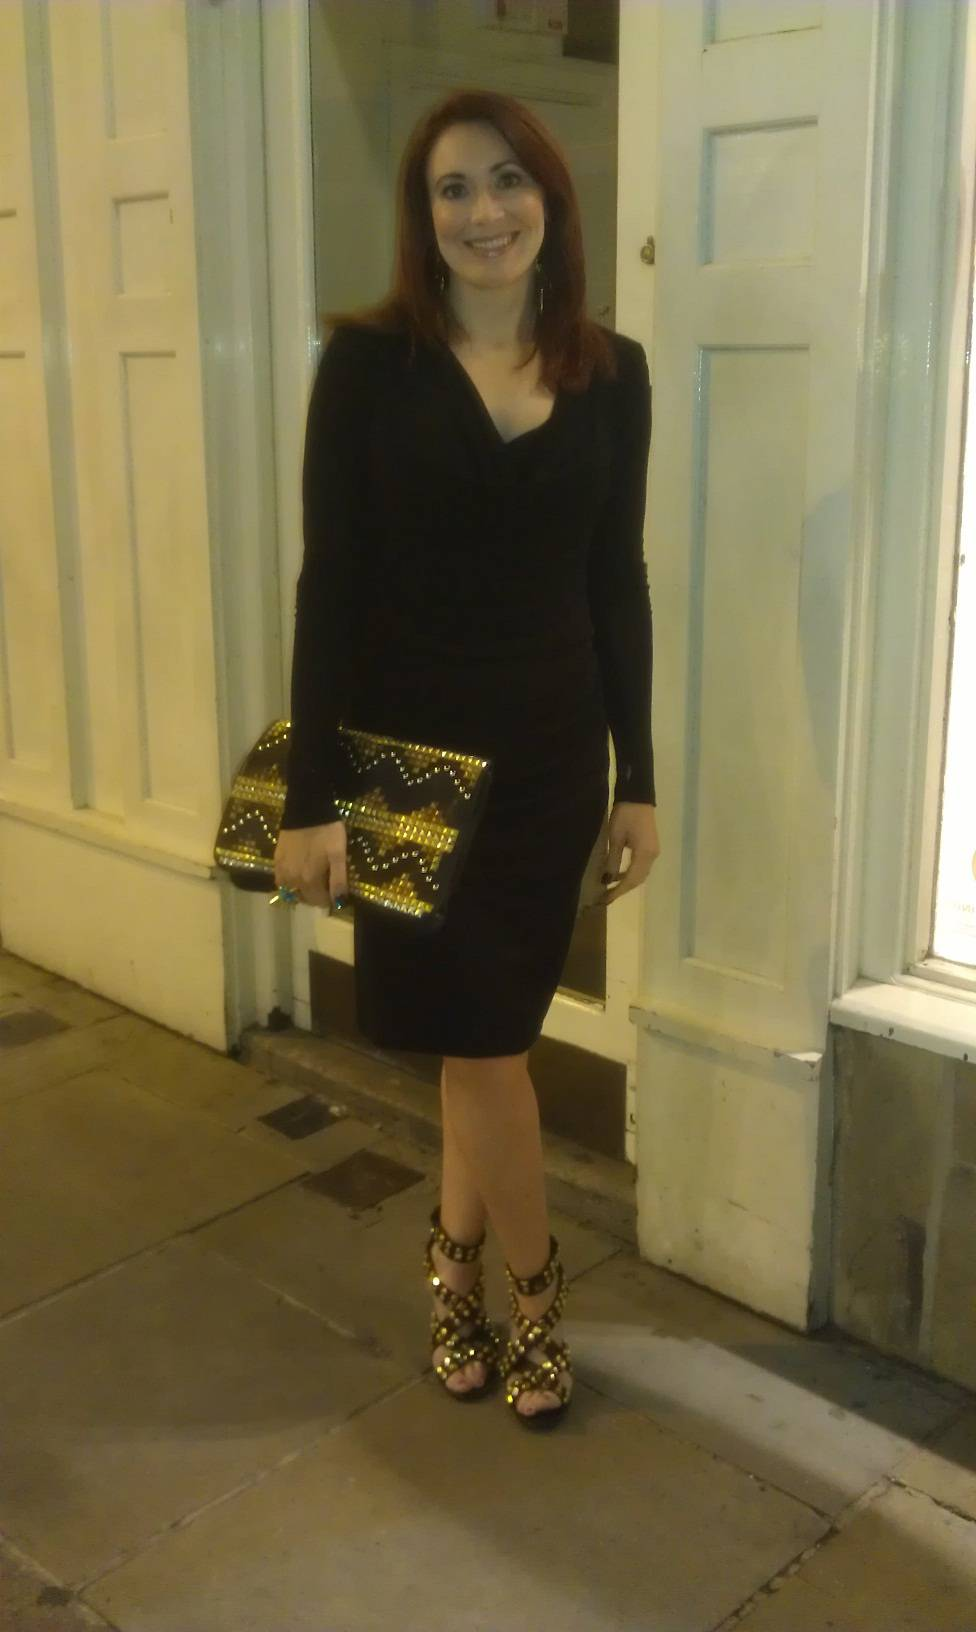 Spikes and Studs, Bastyan black dress, Asos studded clutch, Tory Burch black studded strappy sandals